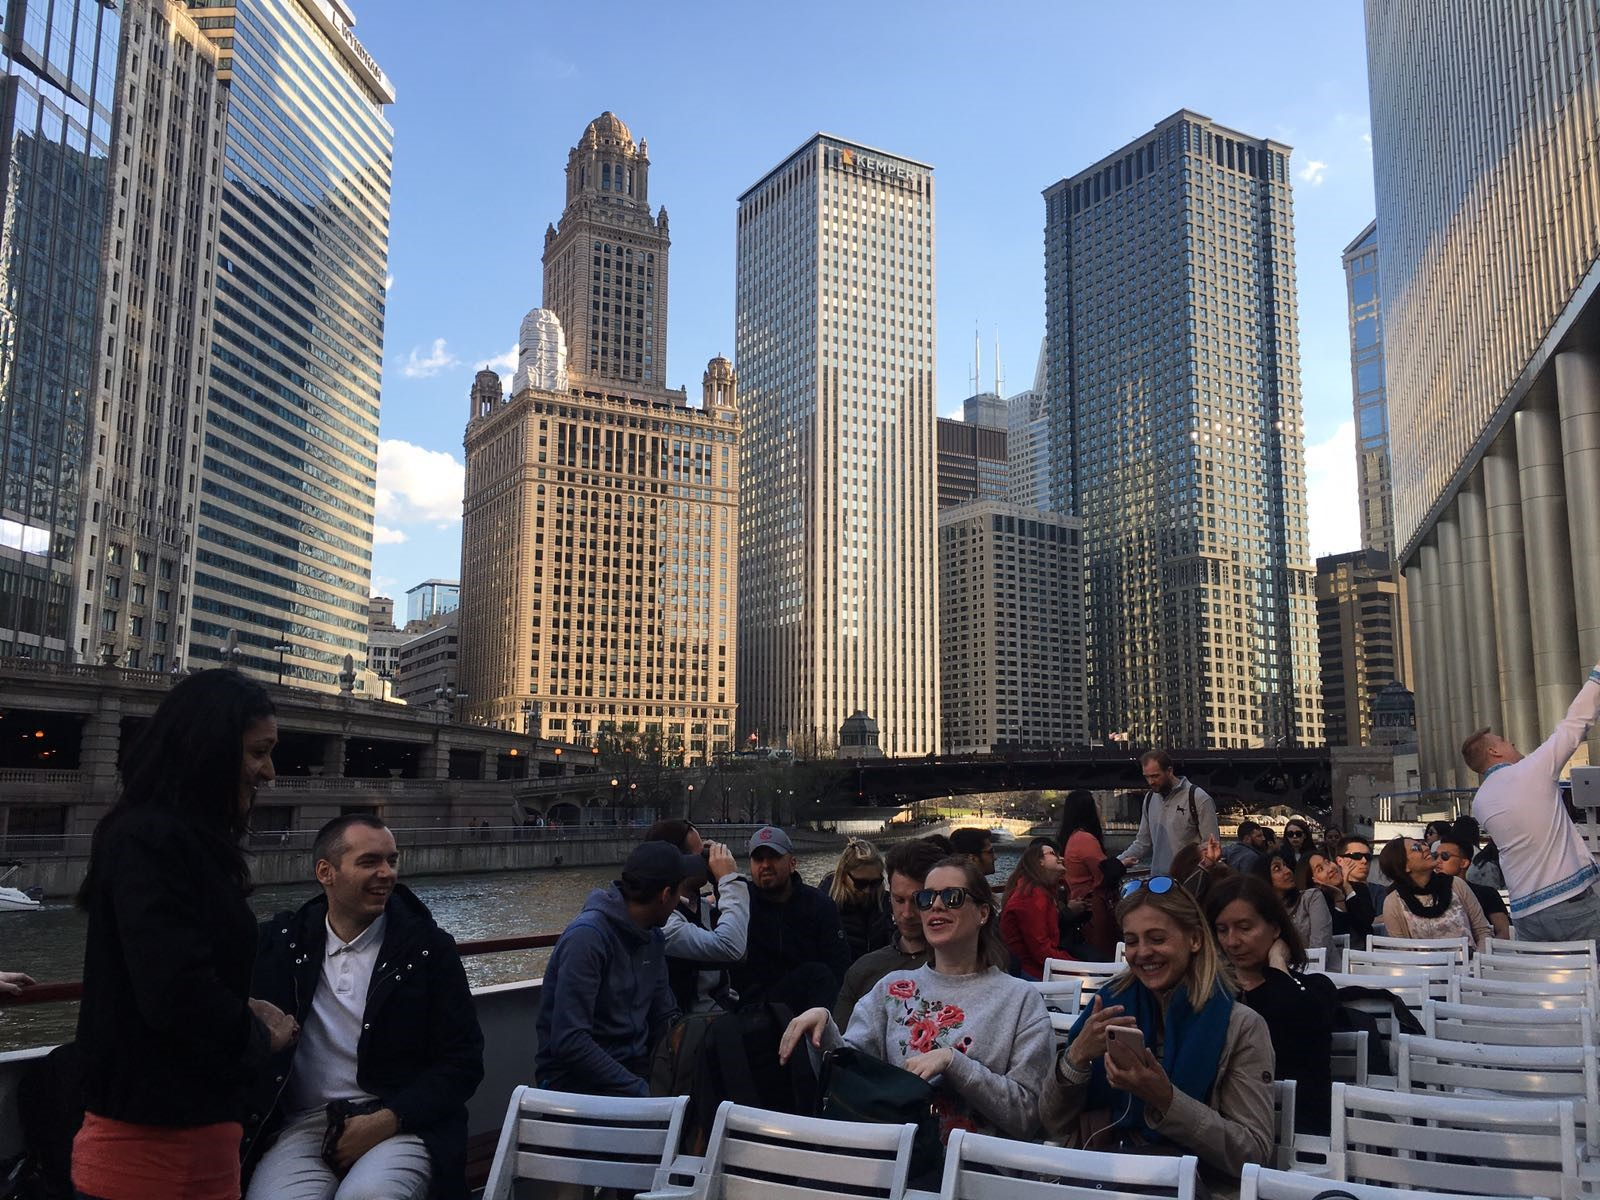 On Architectural Boat Ride – a worldwide known and must see attraction